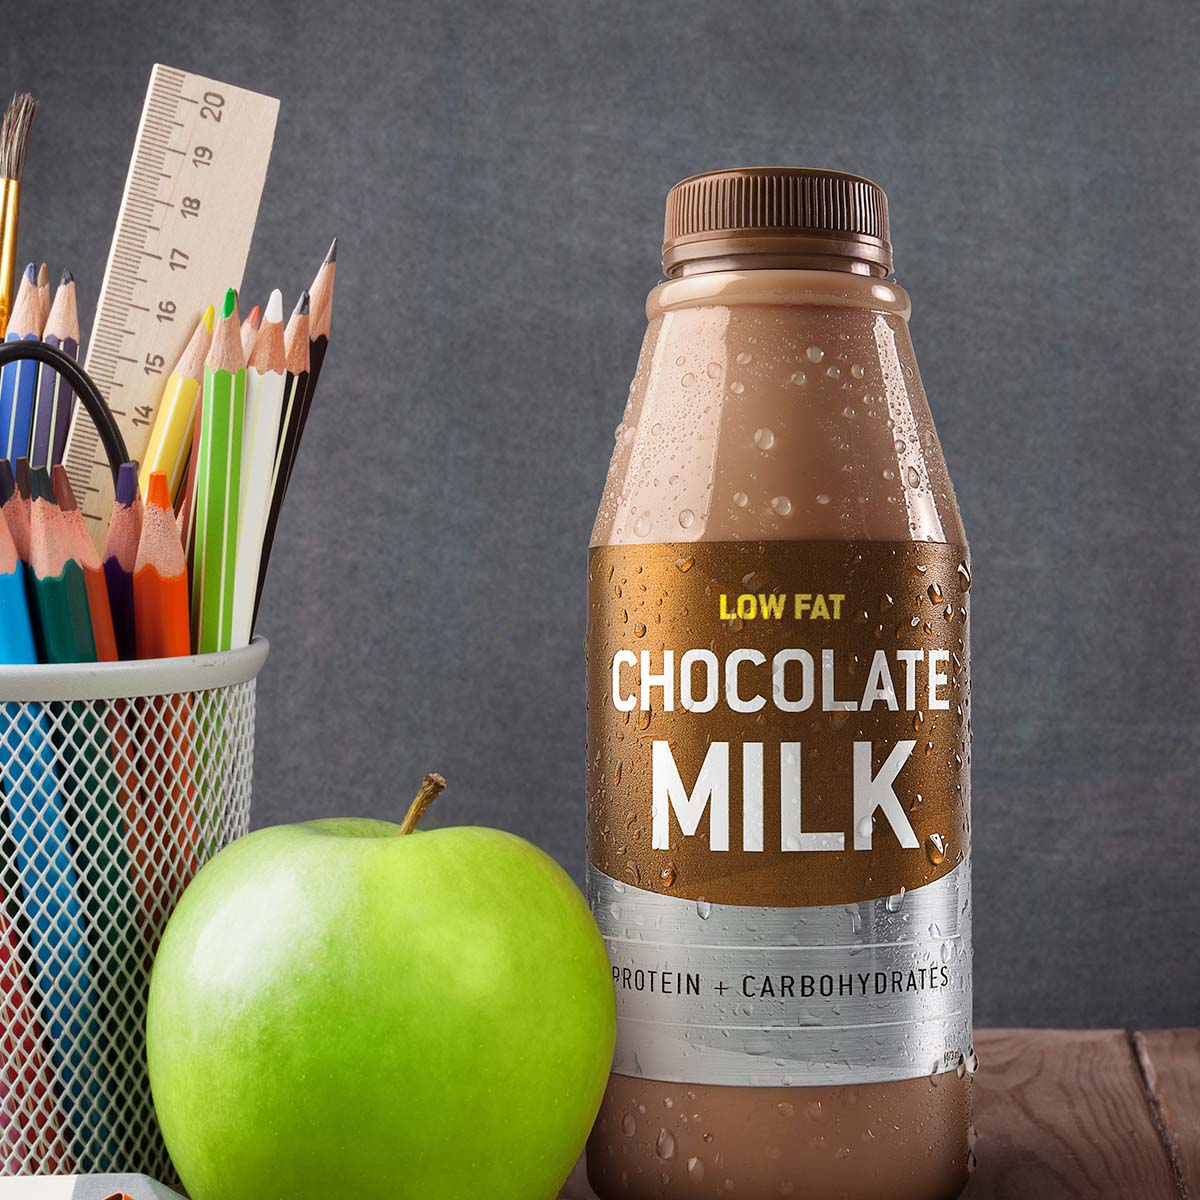 chocolate milk bottle next to an apple and school supplies